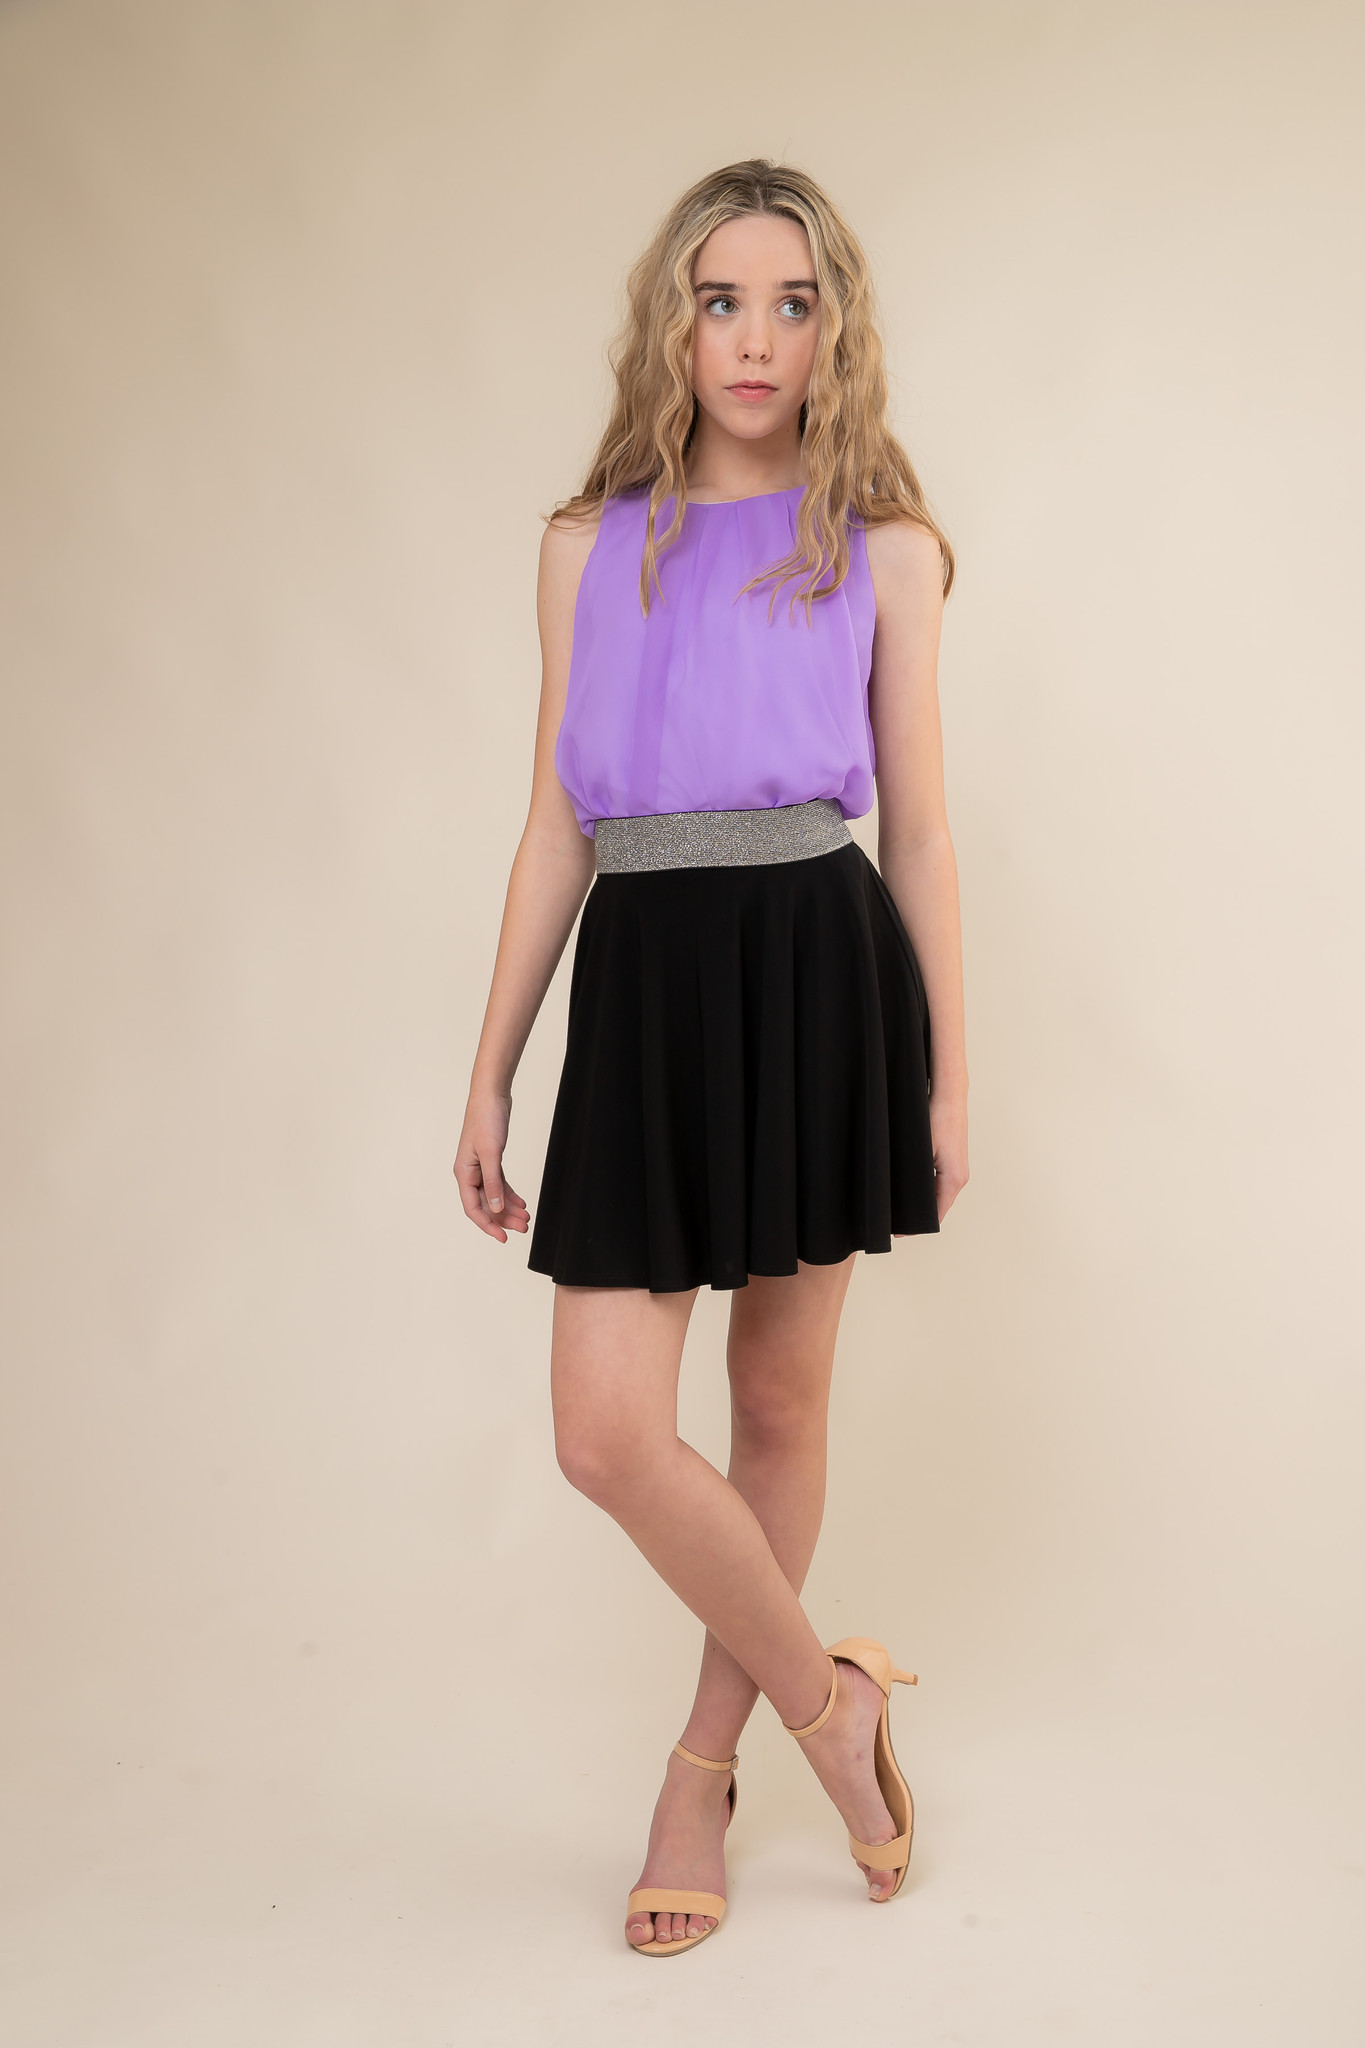 Lilac Top and Black Skater Skirt with Belt.